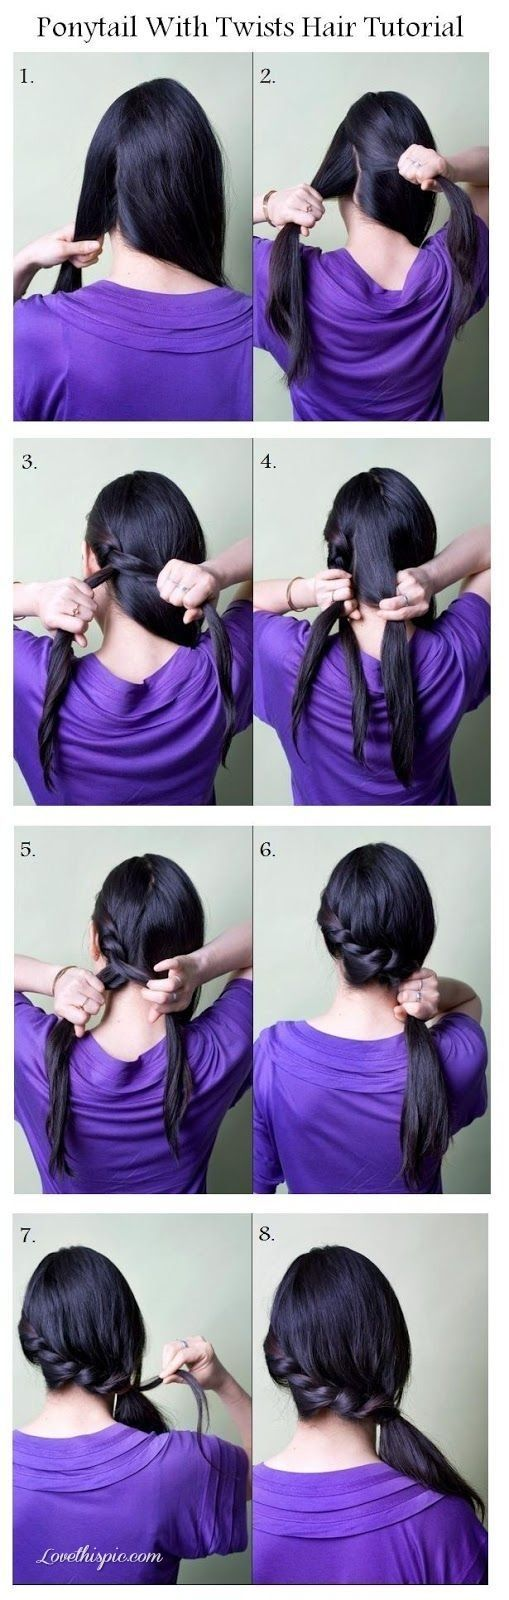 Ponytail with a twist pictures photos and images for facebook